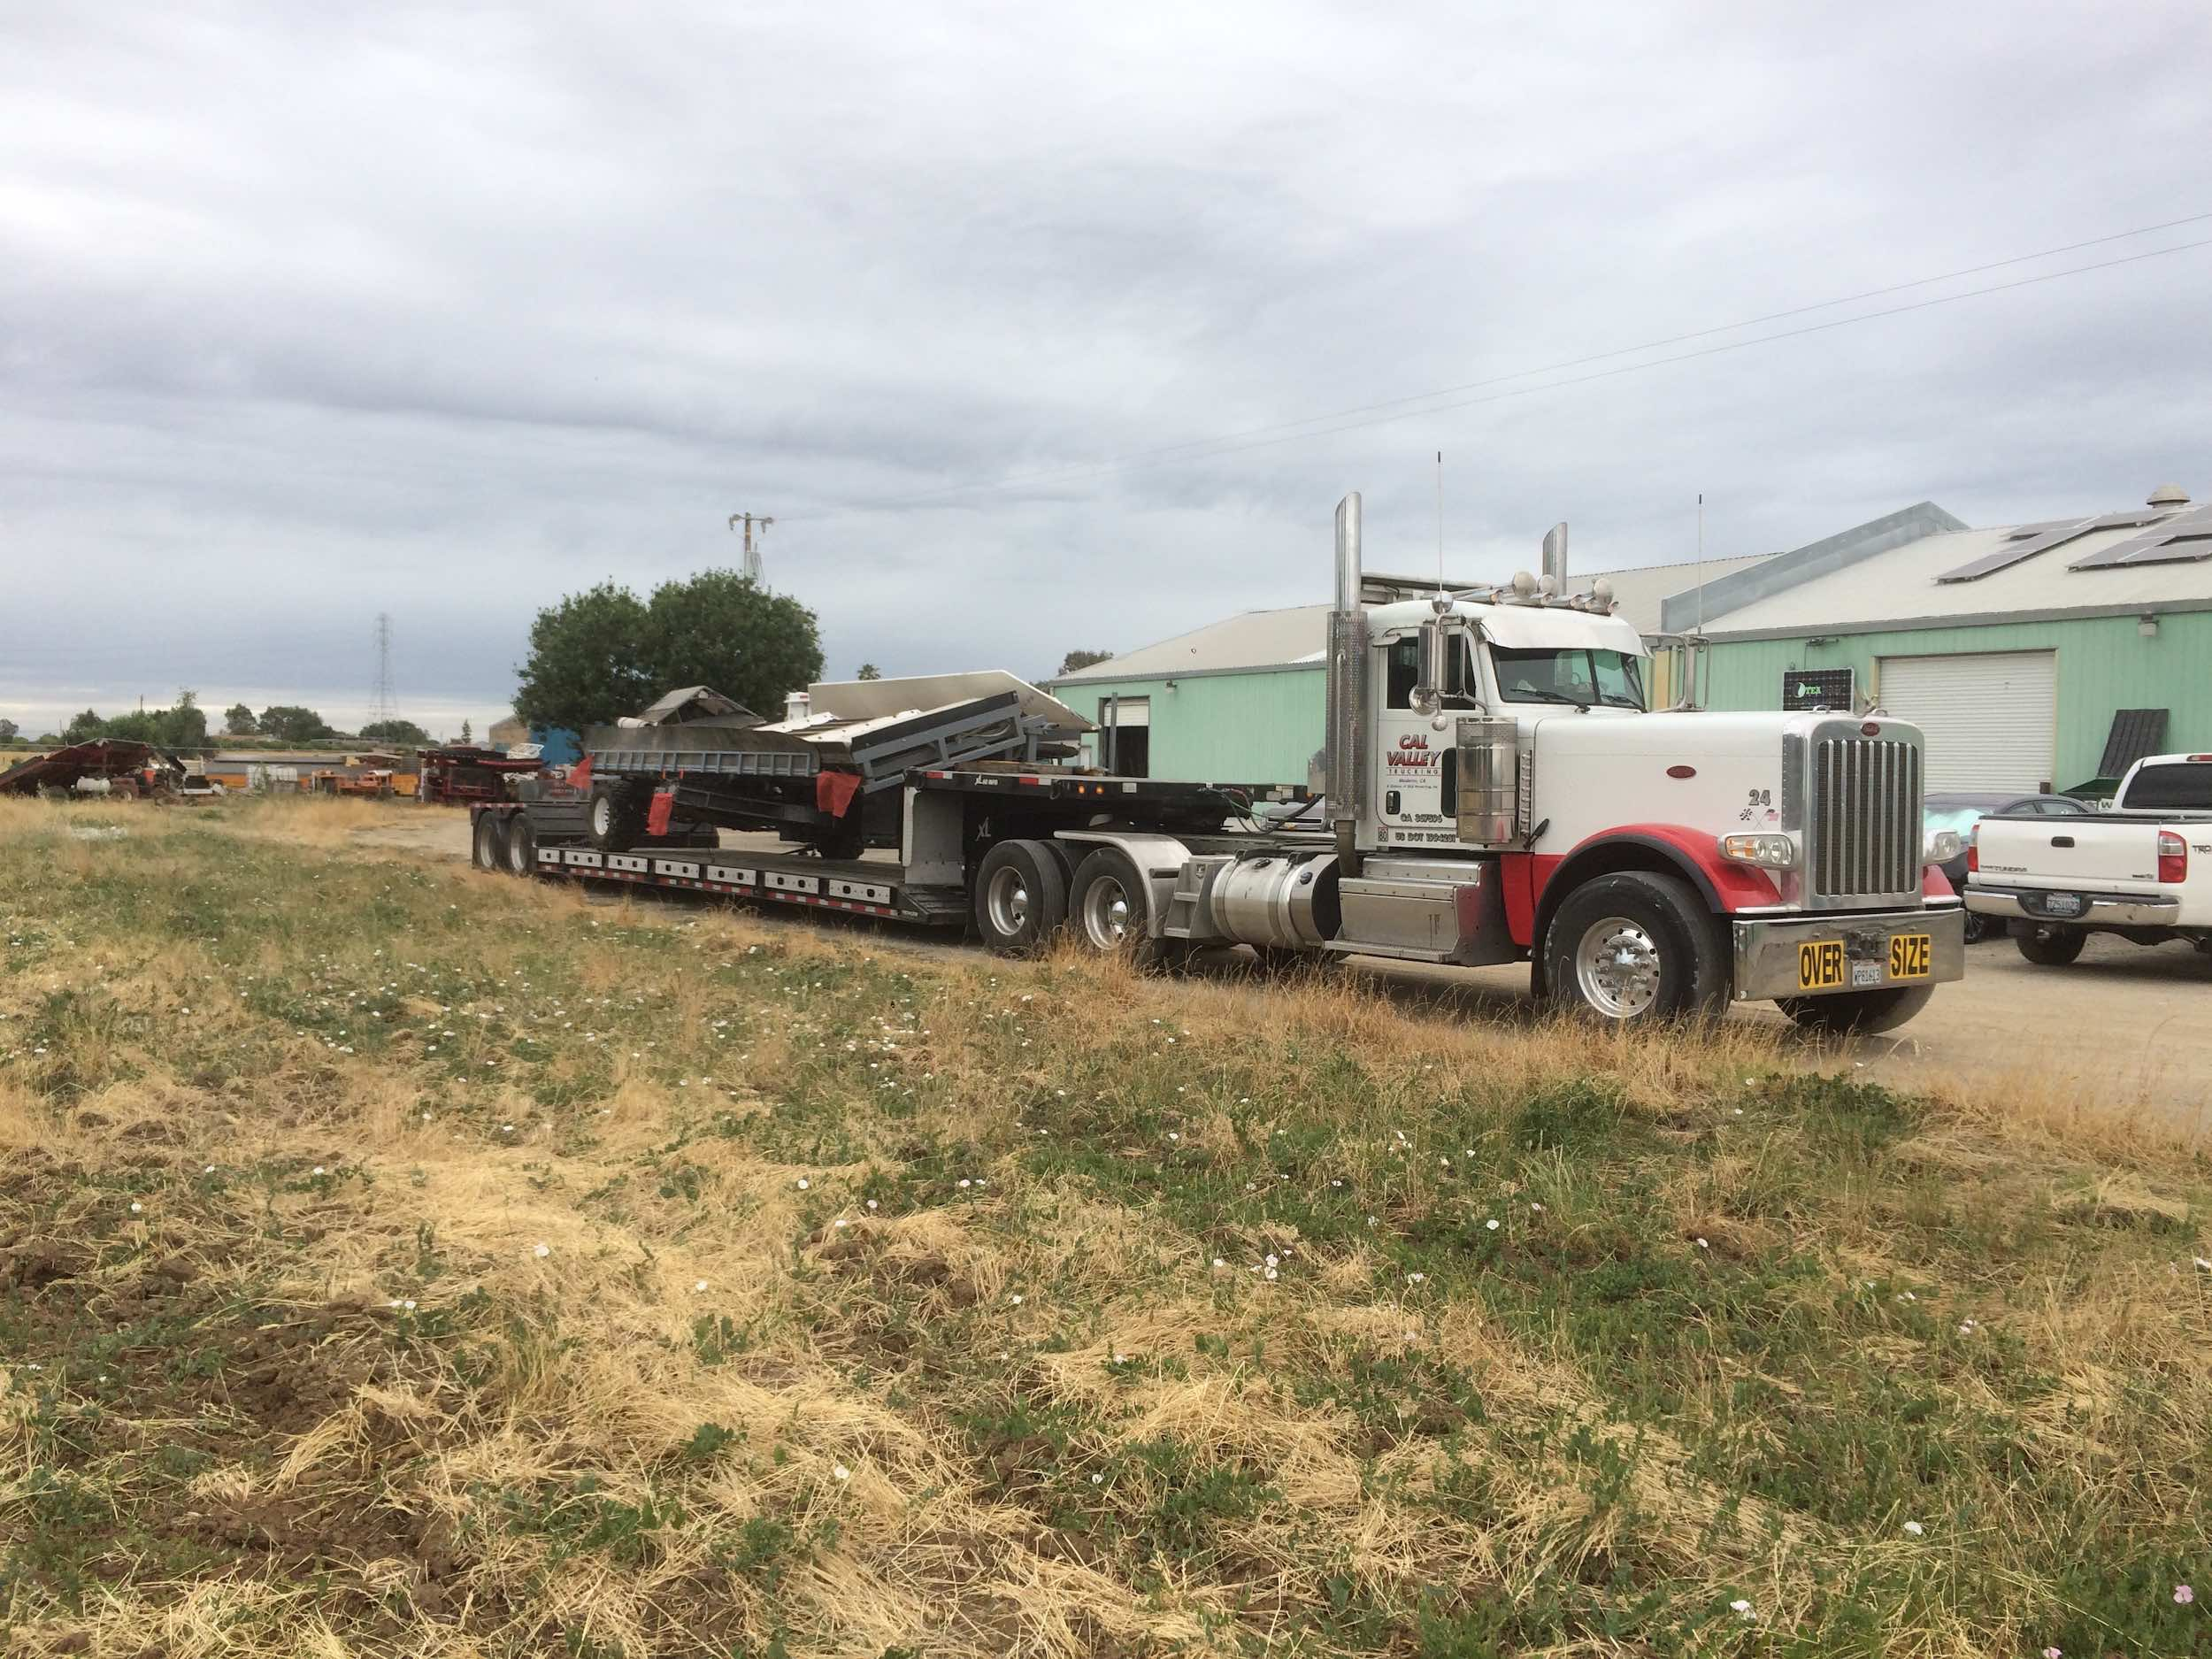 peterbilt-389-xl-specialized-rgn-grape-harvester.jpg